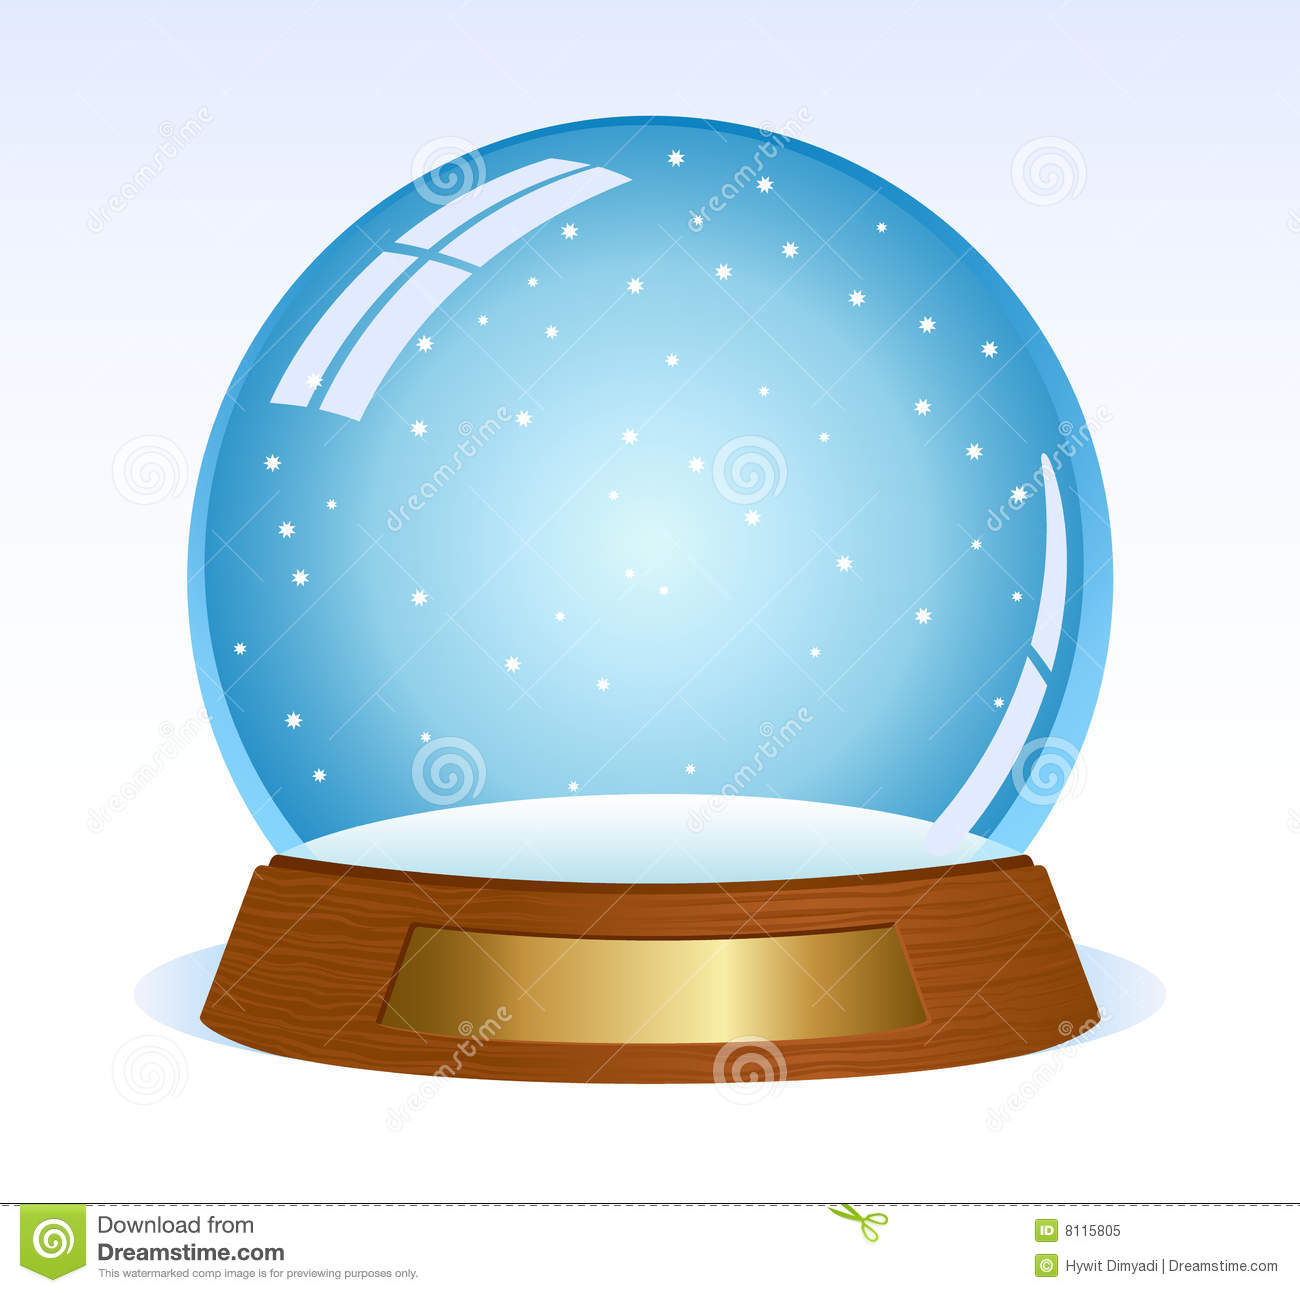 1300x1293 28+ Collection of Empty Snow Globe Clipart High quality, free